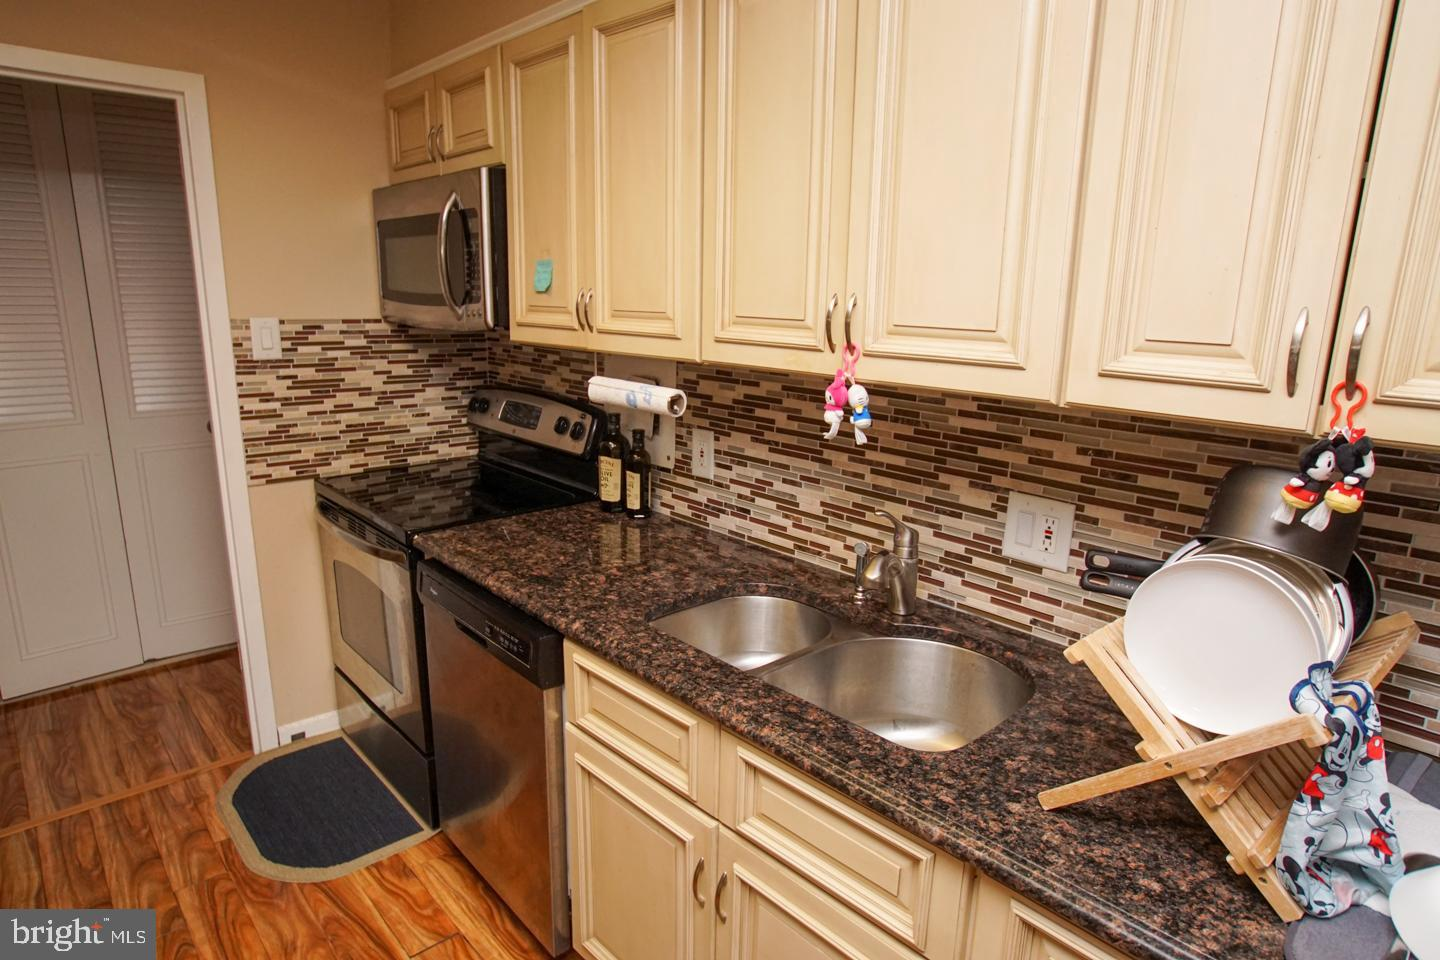 Welcome to this beautiful condo located in Wynnewood! The West building has been completely renovated. The property features an open floor plan with an amazing central island. Granite counter tops and stylish backsplash really make this kitchen pop. Open floor plan will not disappoint! The unit itself has been updated tremendously.. stainless steel appliances, new bathroom fixtures, new hardwood floors, and updated closets. Enjoy all the amenities that come with this property. The Green Hill complex has pools, a private shuttle service, common rooms, landscaping, covered parking, and all utilities! Come view this property before it is too late!